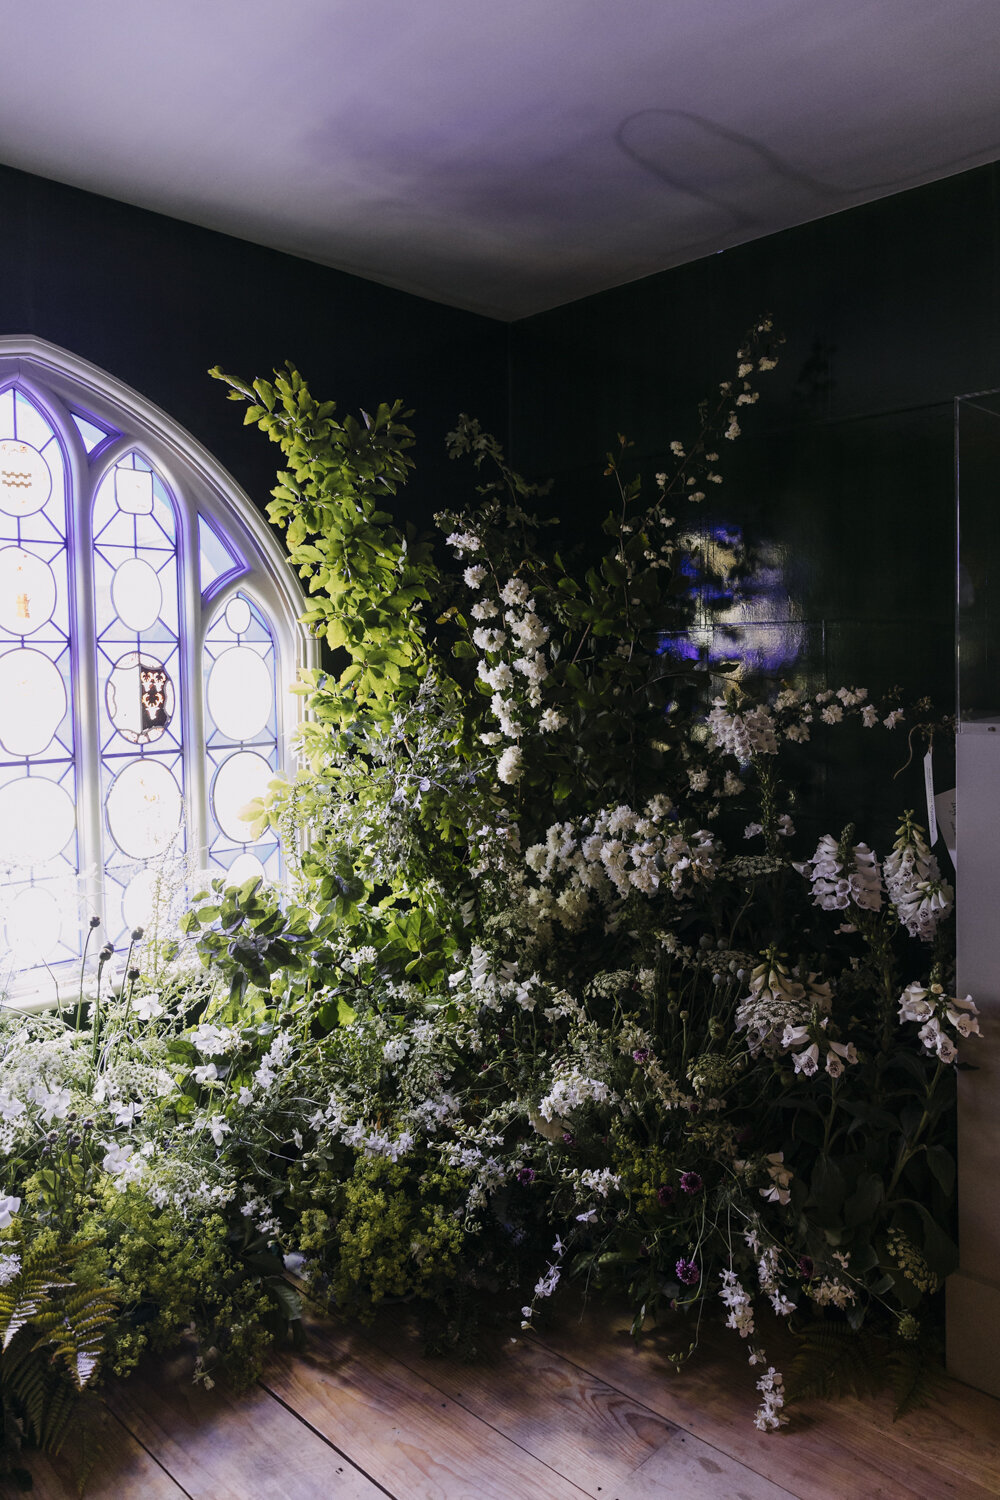 Installation by Leigh Chappell using flowers grown by Wolves Lane Flower Company  Photo by Eva Nemeth